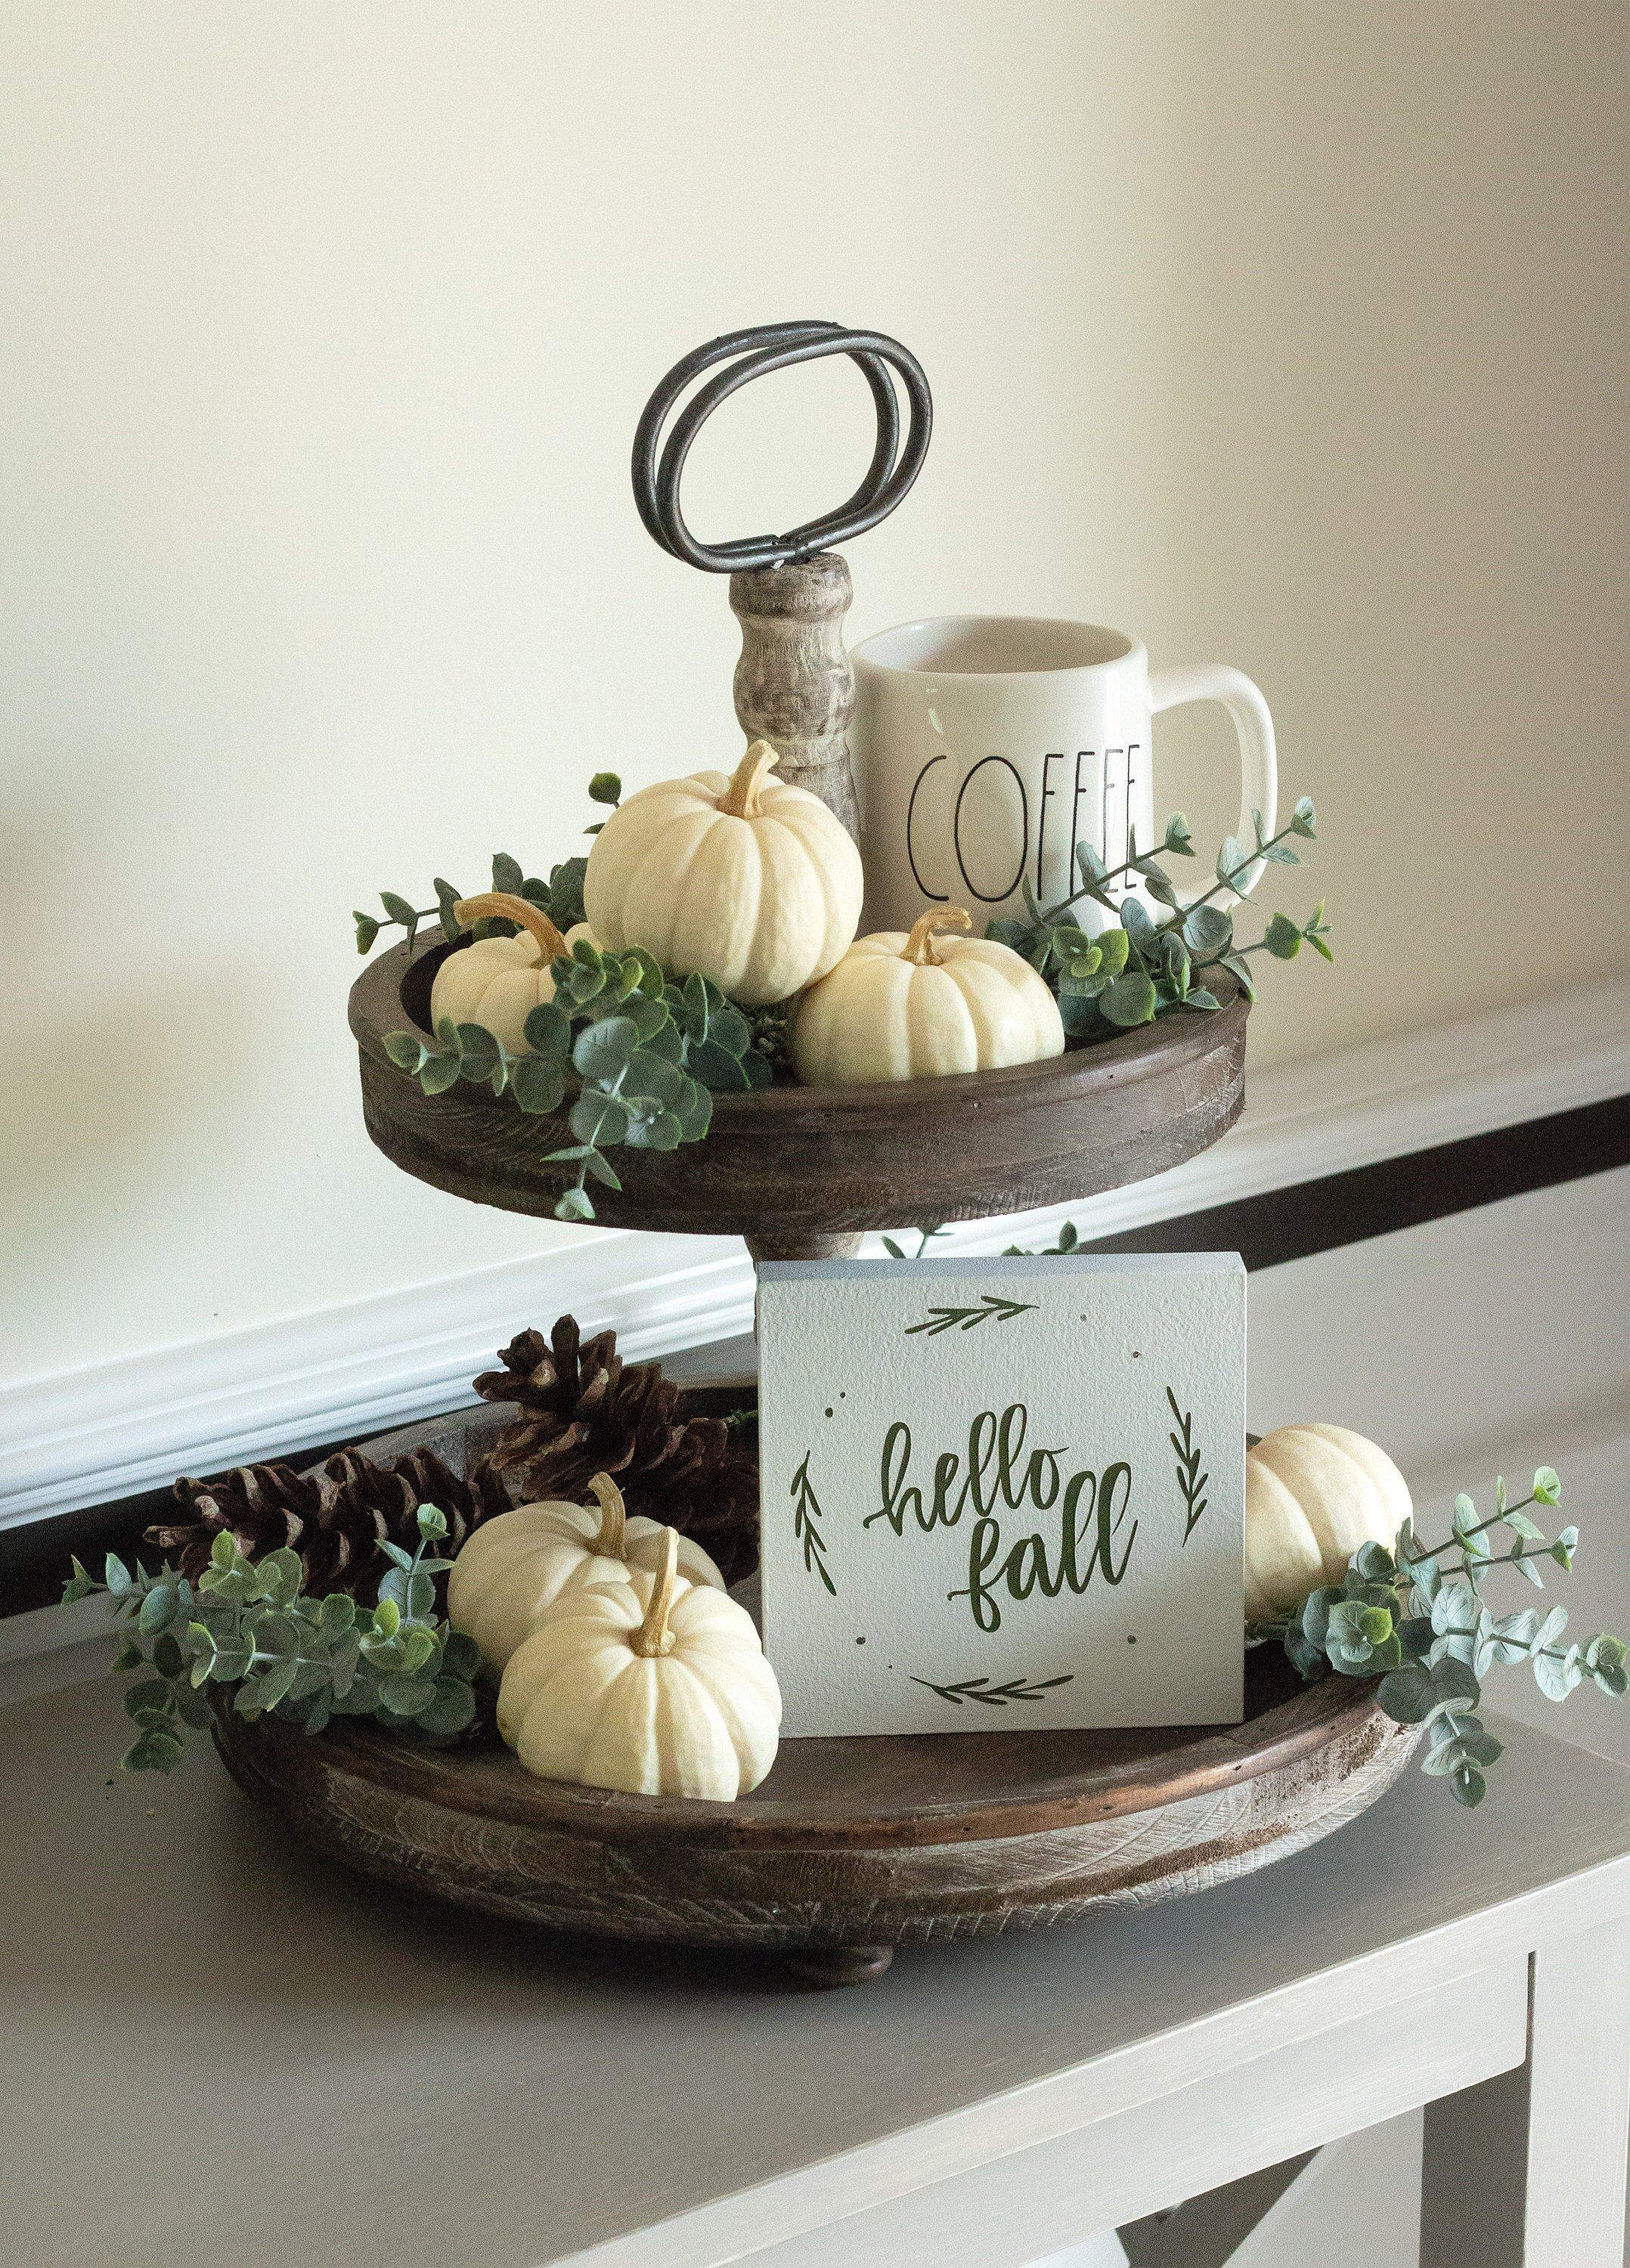 Fall Home Decor-Autumn Gifts -Tiered Tray Sign-Hello Fall Wreath Sign-Fall Decor-Farmhouse Decor-Housewarming Gift-Thanksgiving Decor